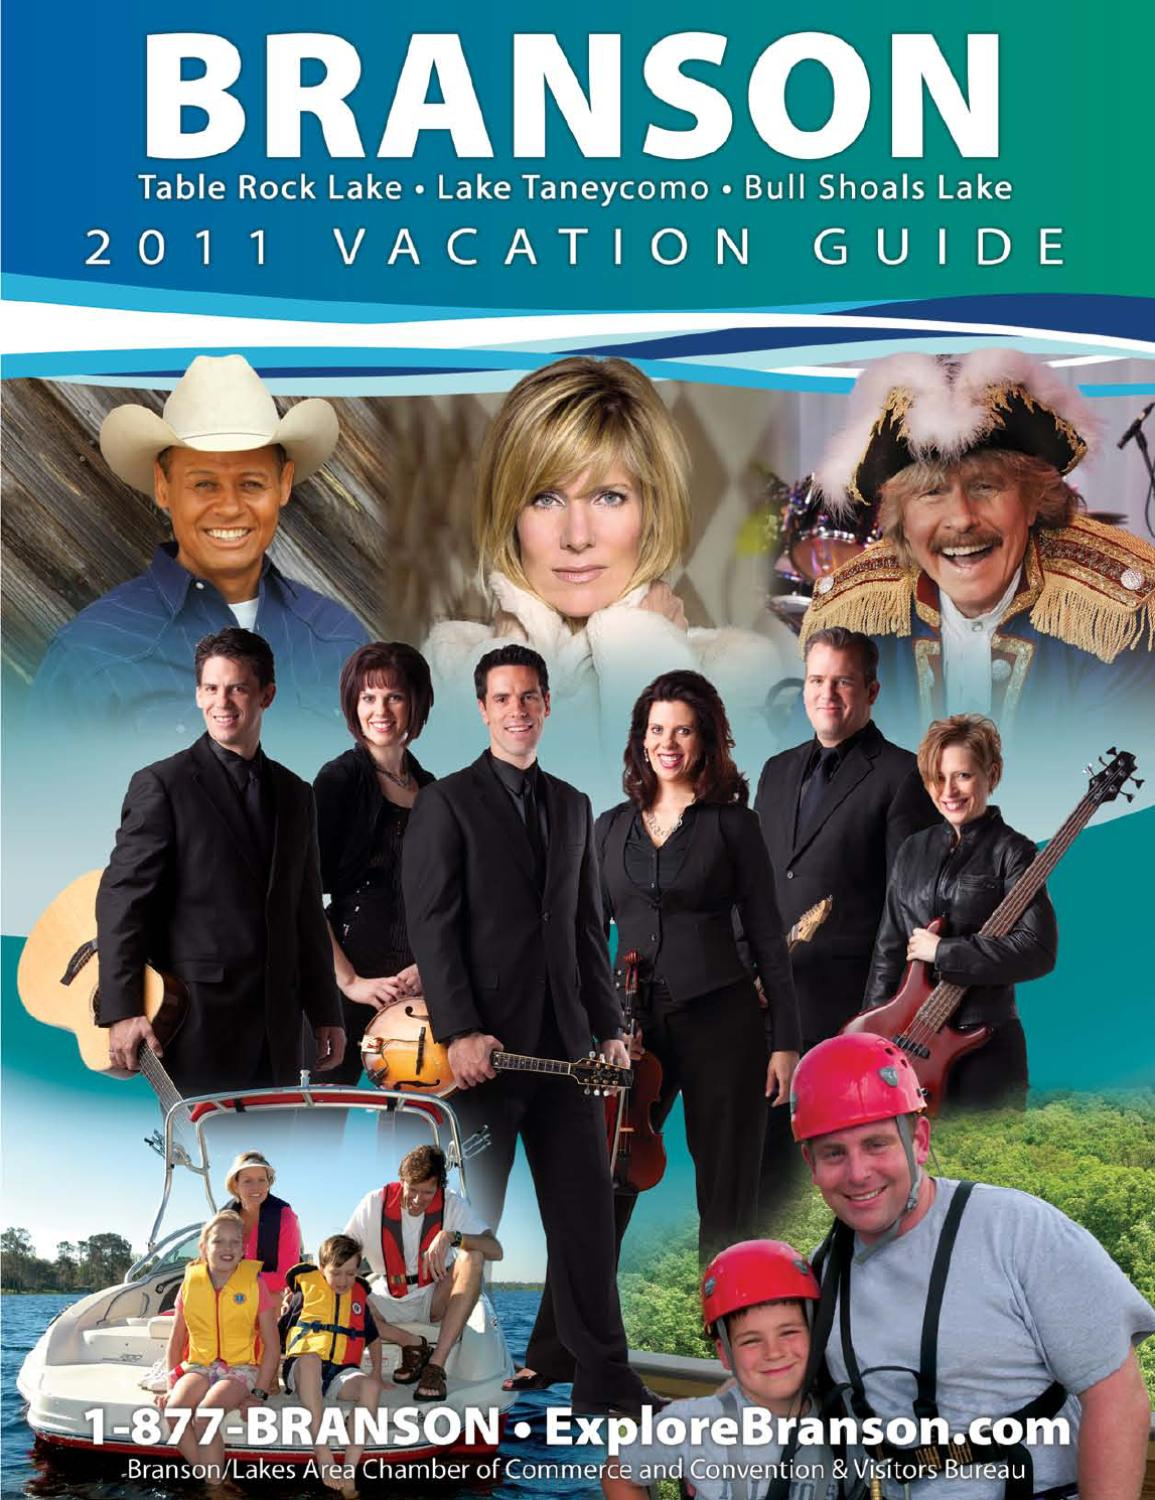 2011 Branson Vacation Guide And Travel Planner By Branson